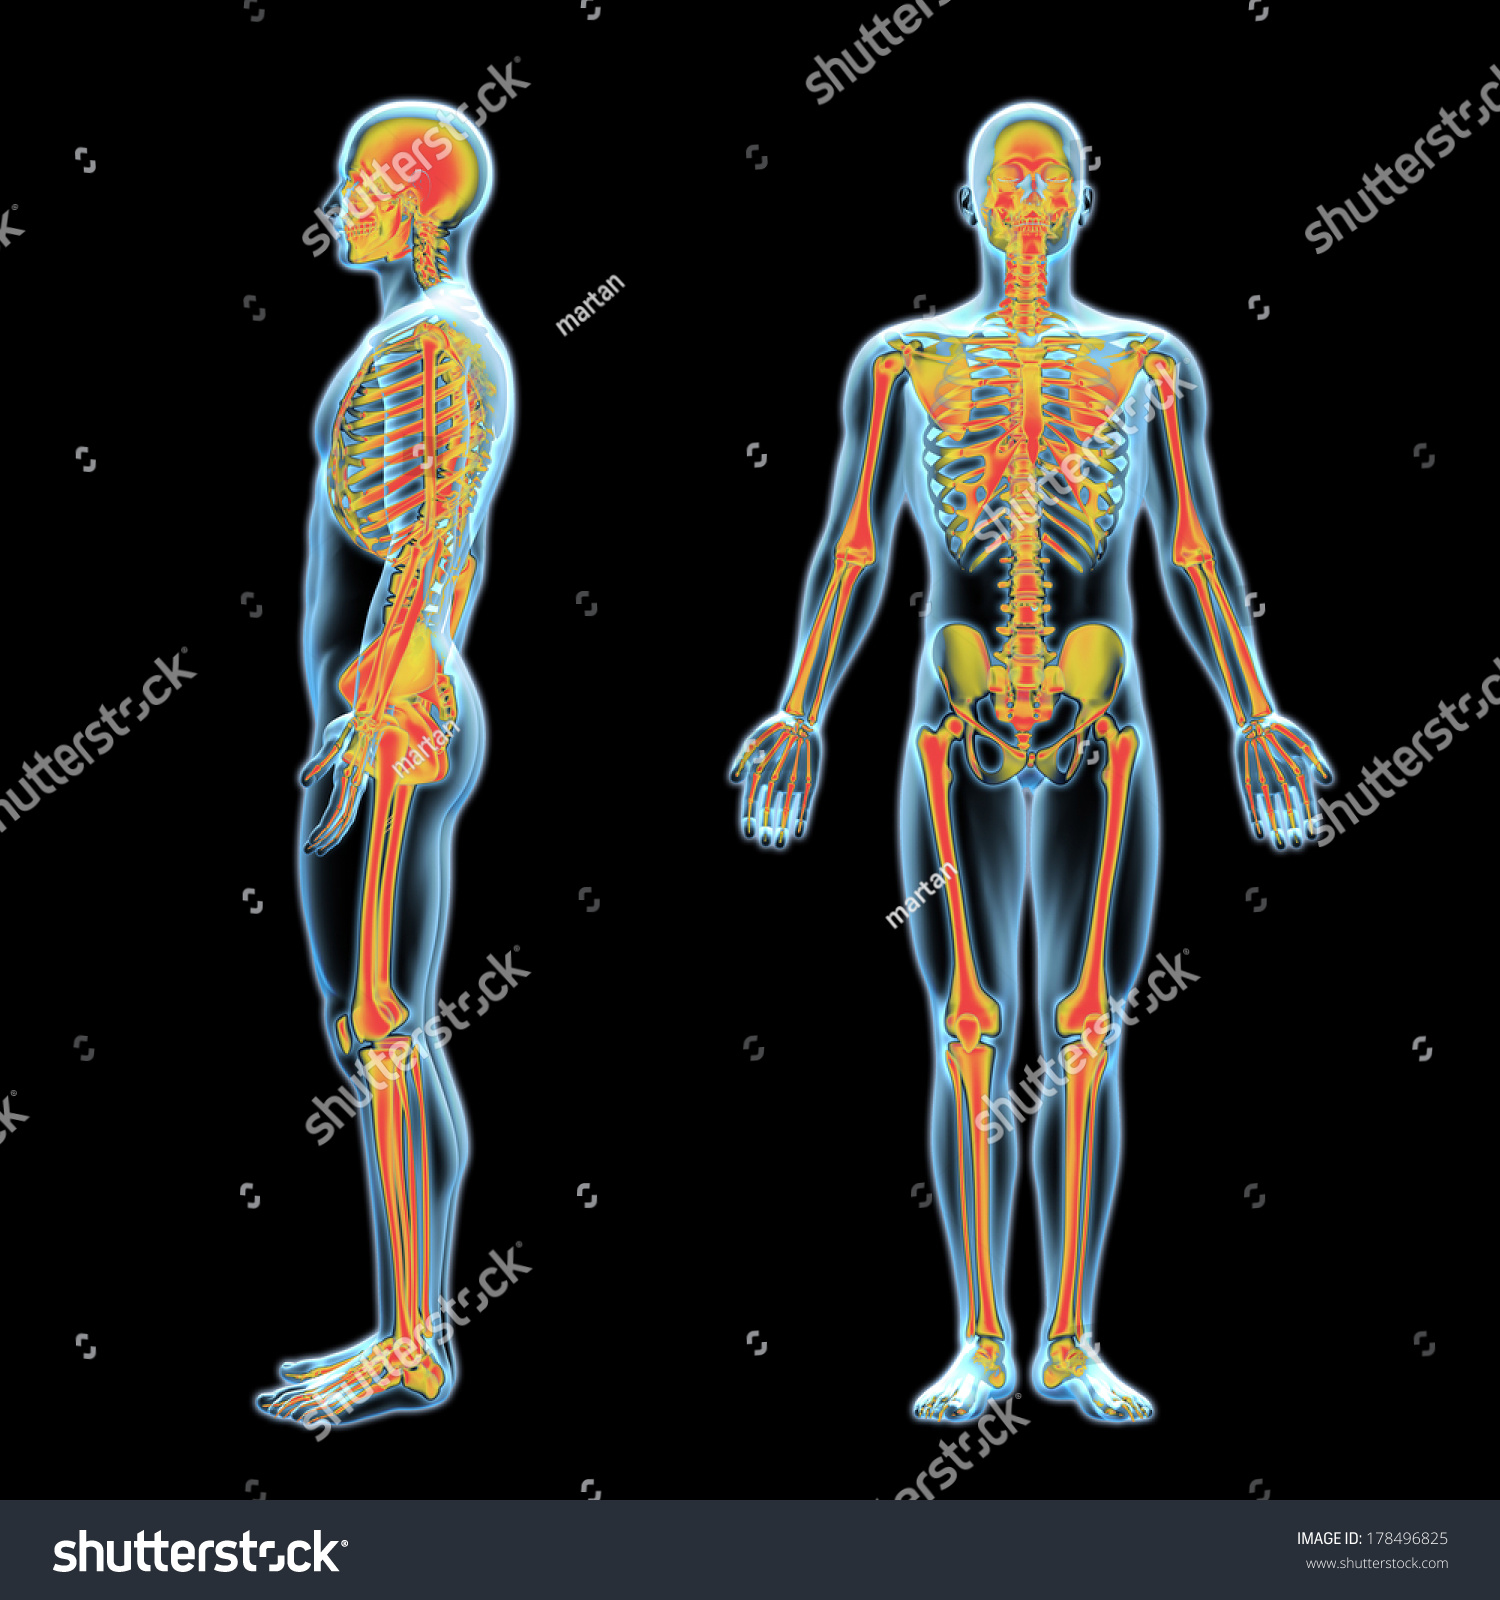 3d xray human anatomy model skeleton stock illustration 178496825, Skeleton